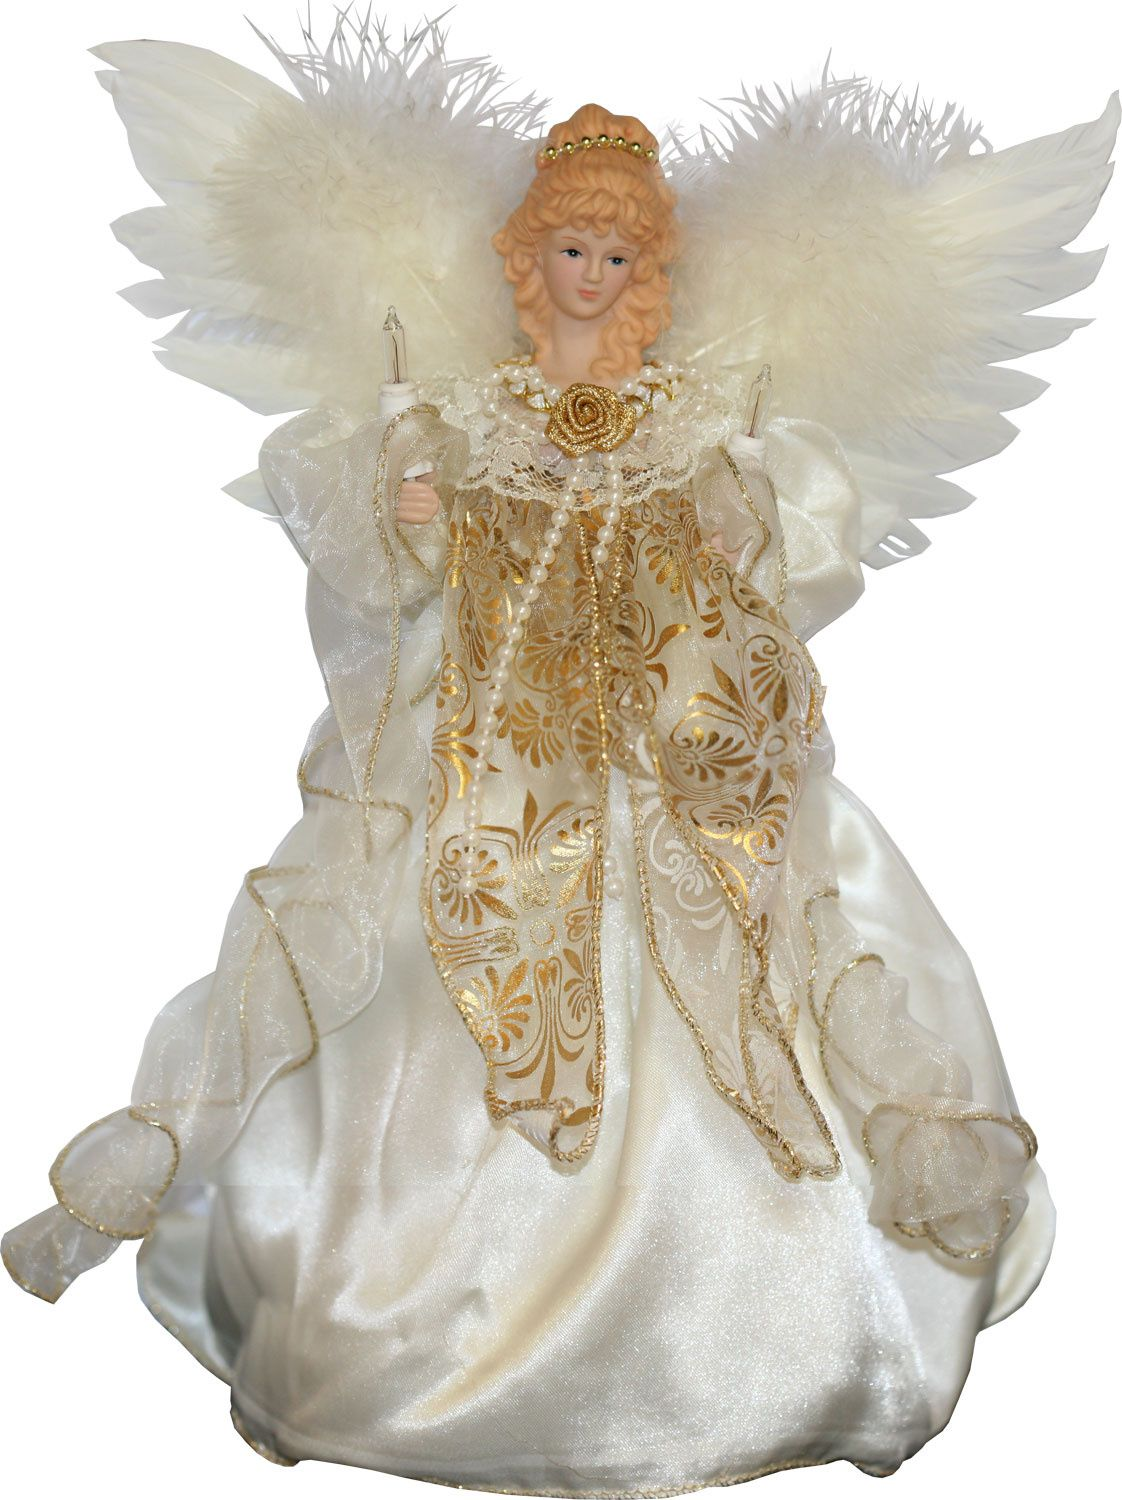 Animated fiber optic angel tree topper wears an ivory lace